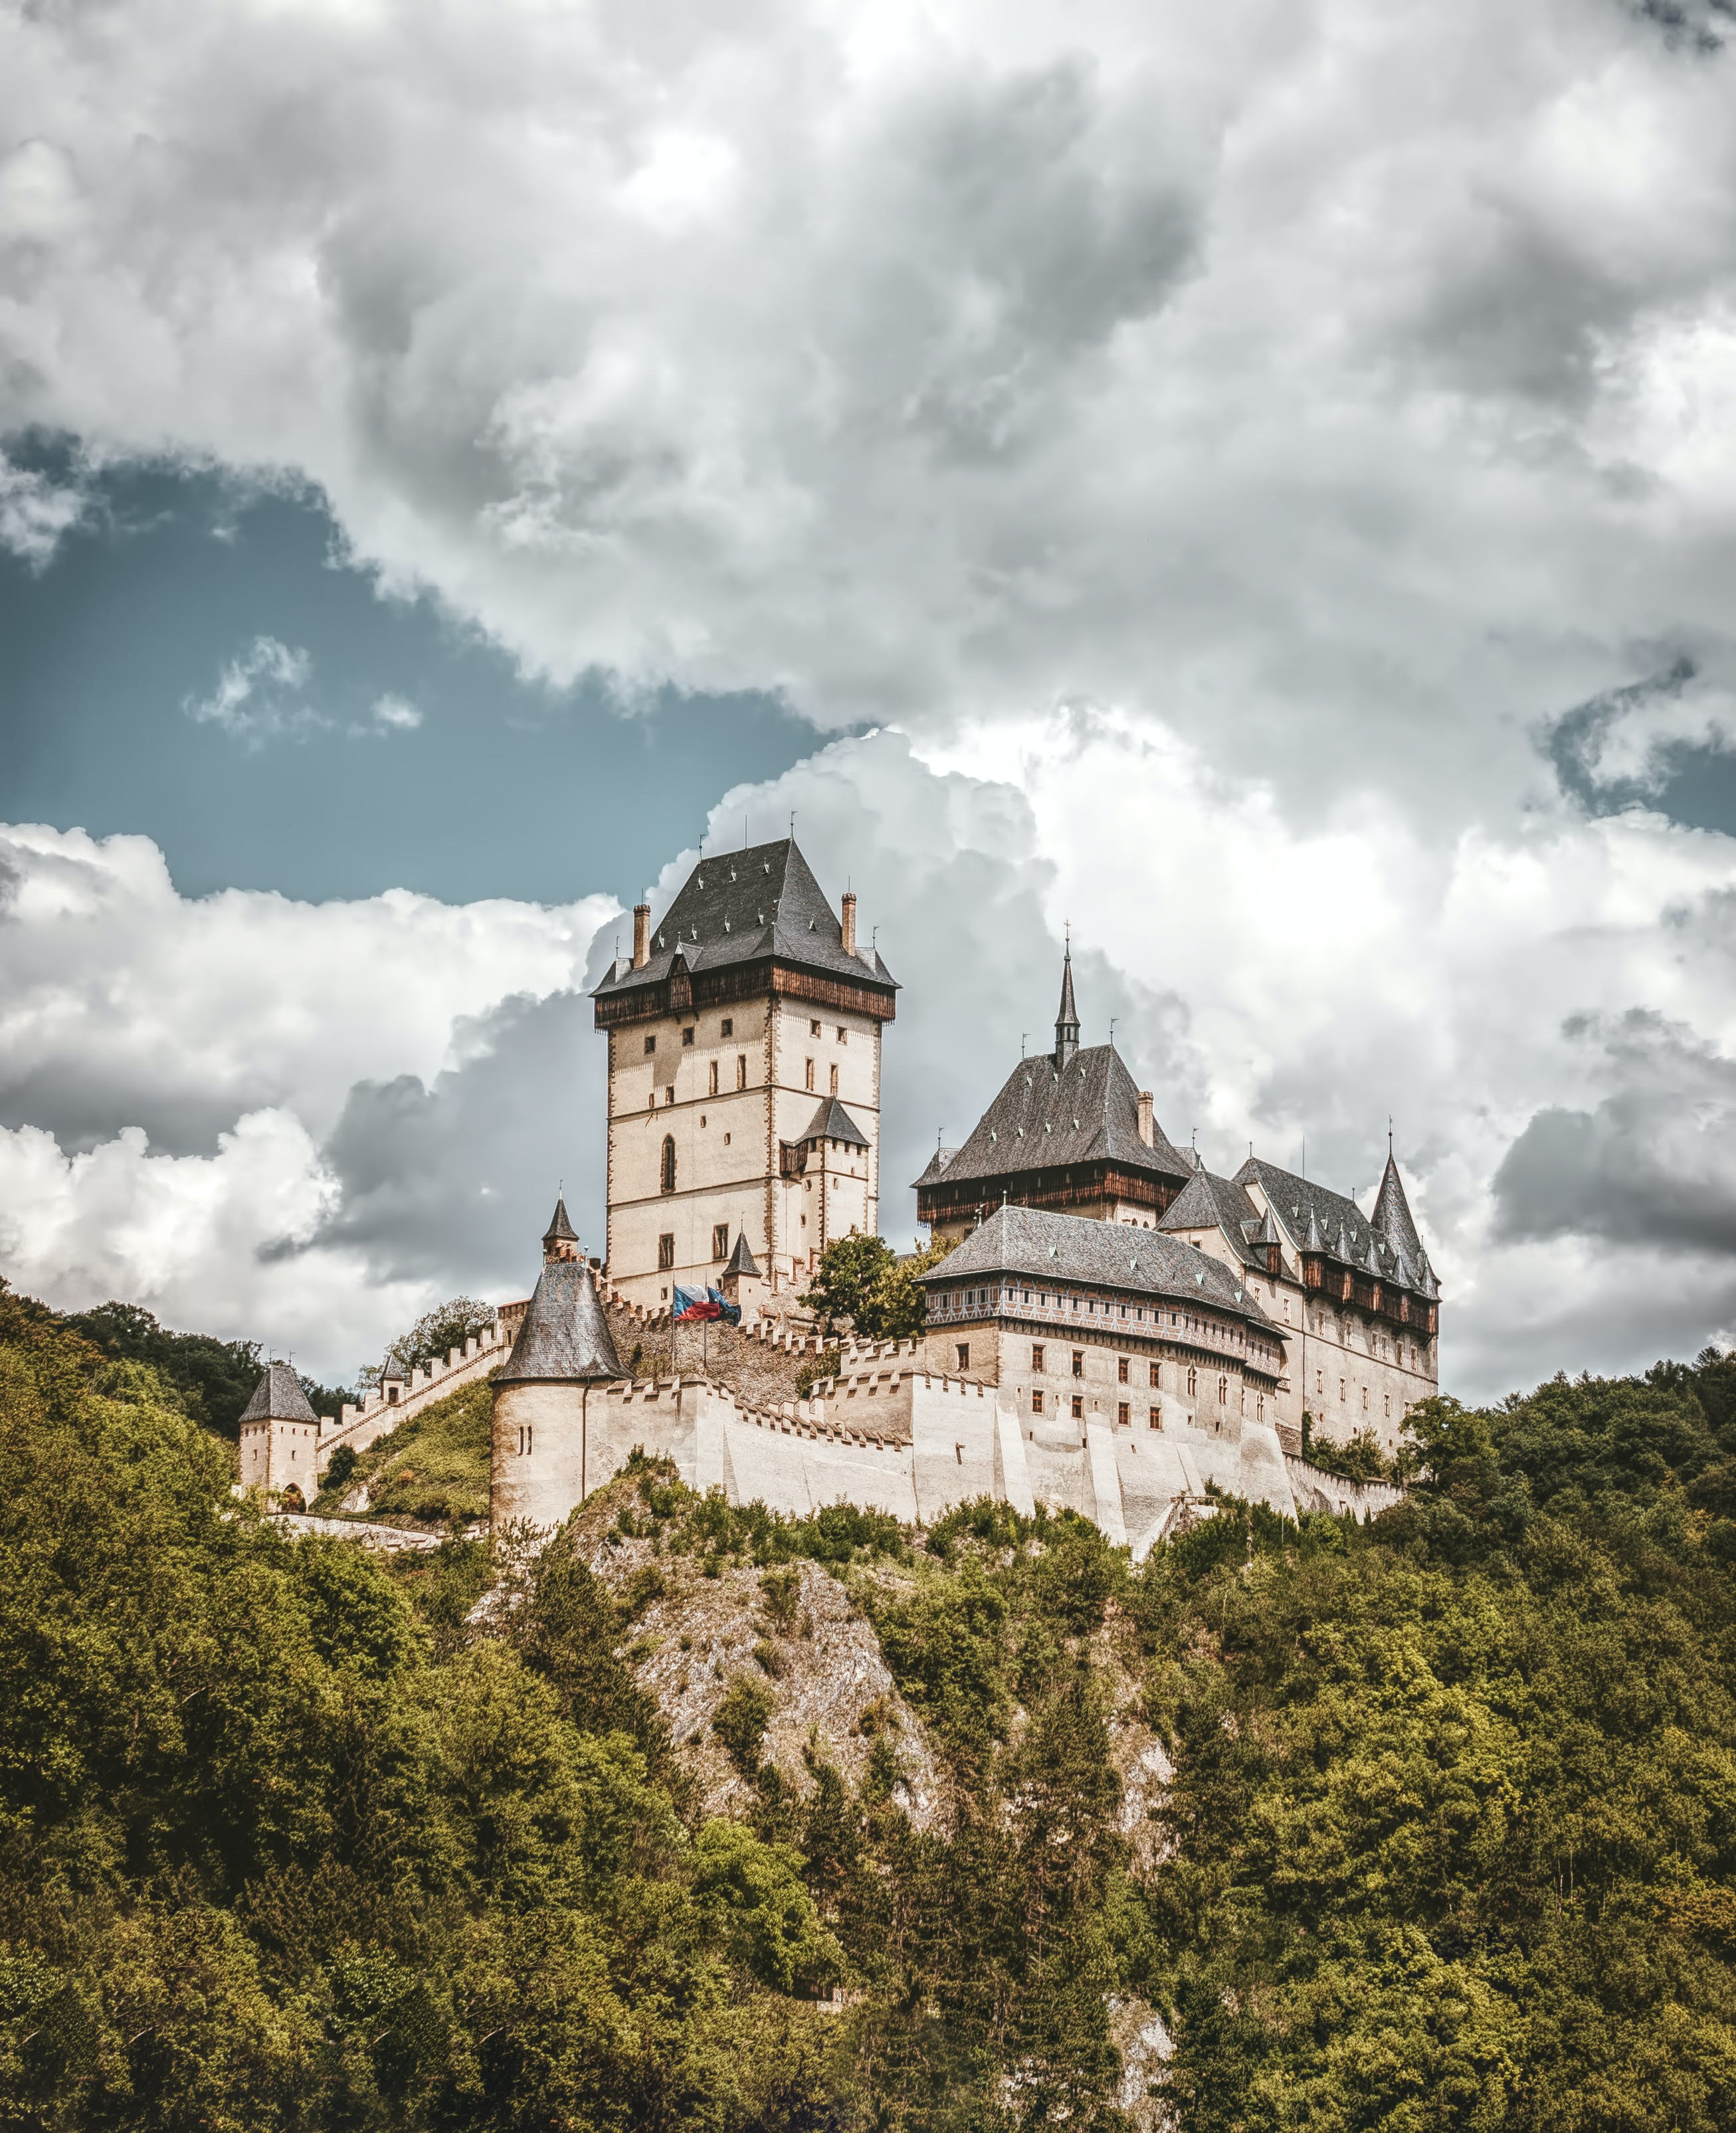 White and Black Concrete Castle on Mountain Under White Clouds